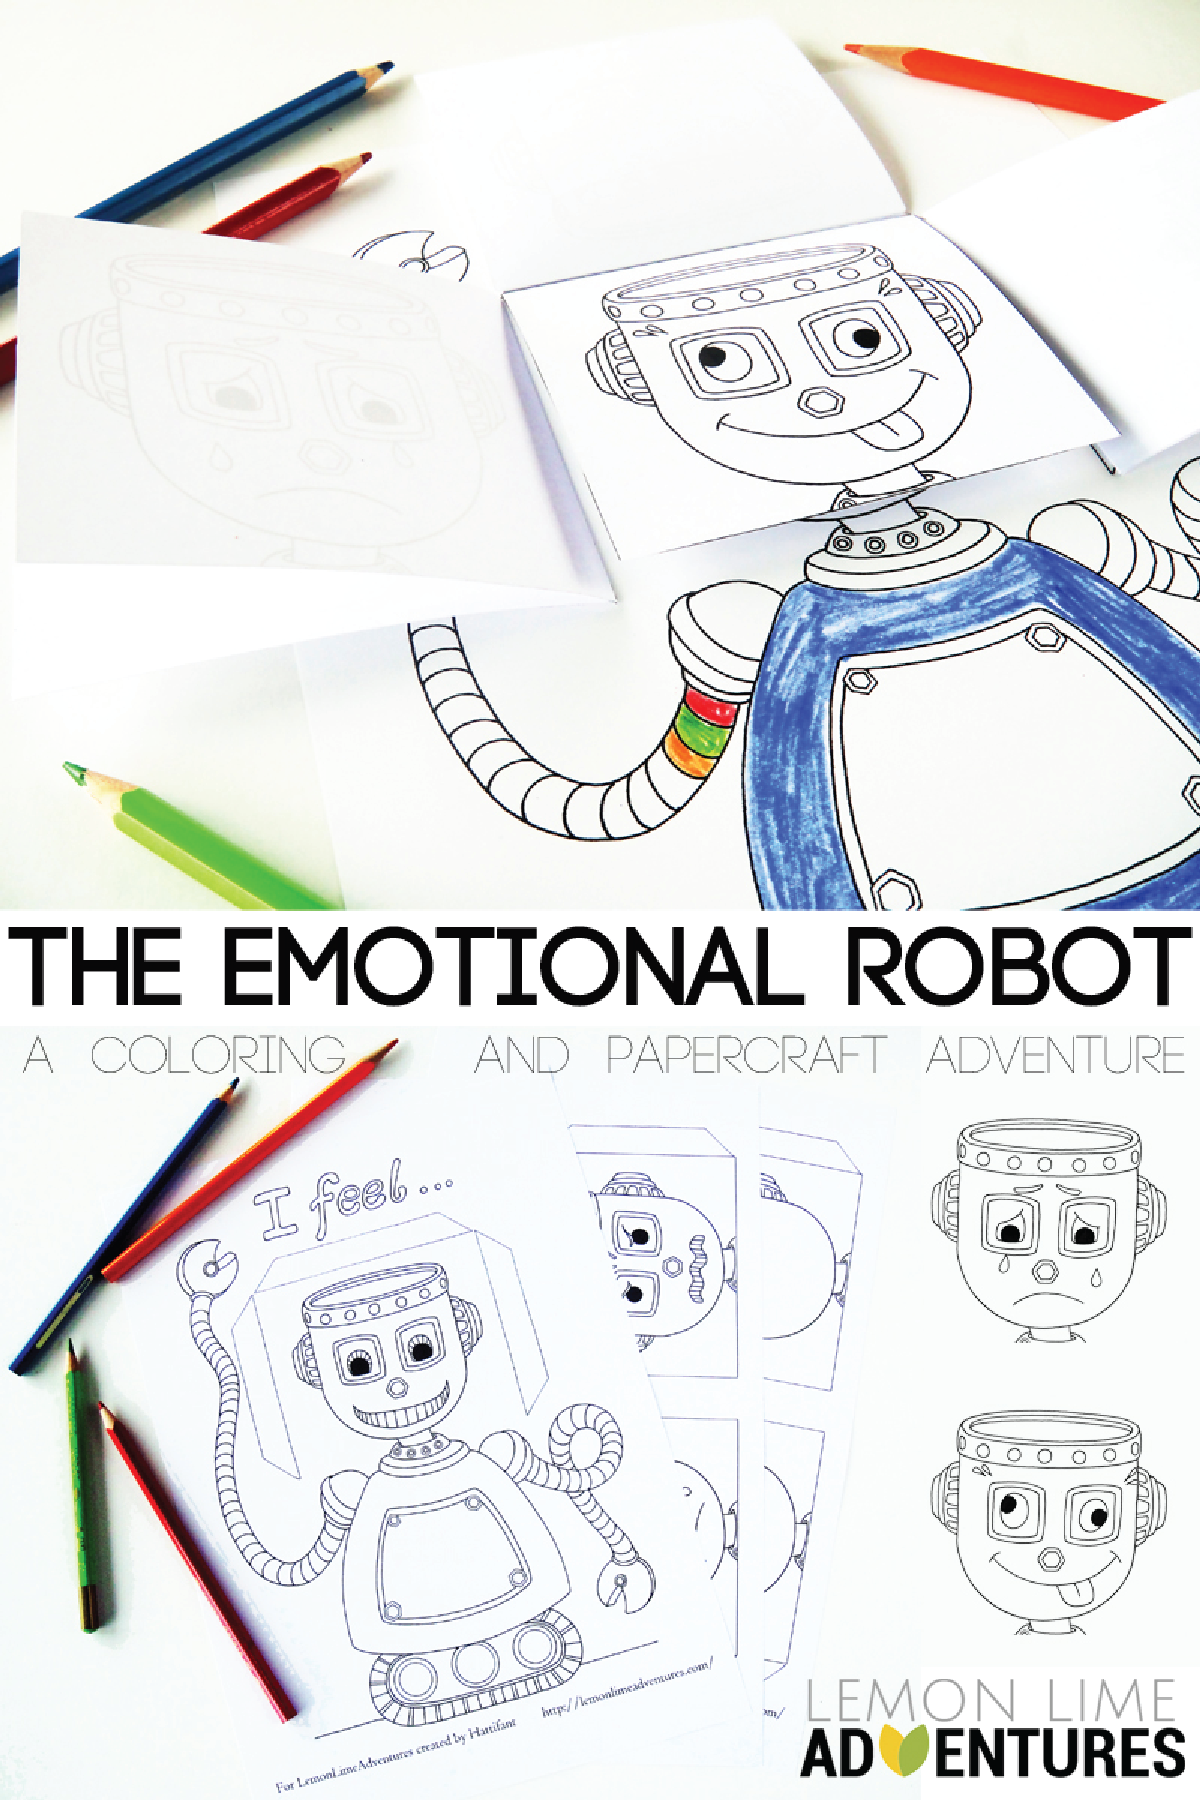 The Emotional Robot